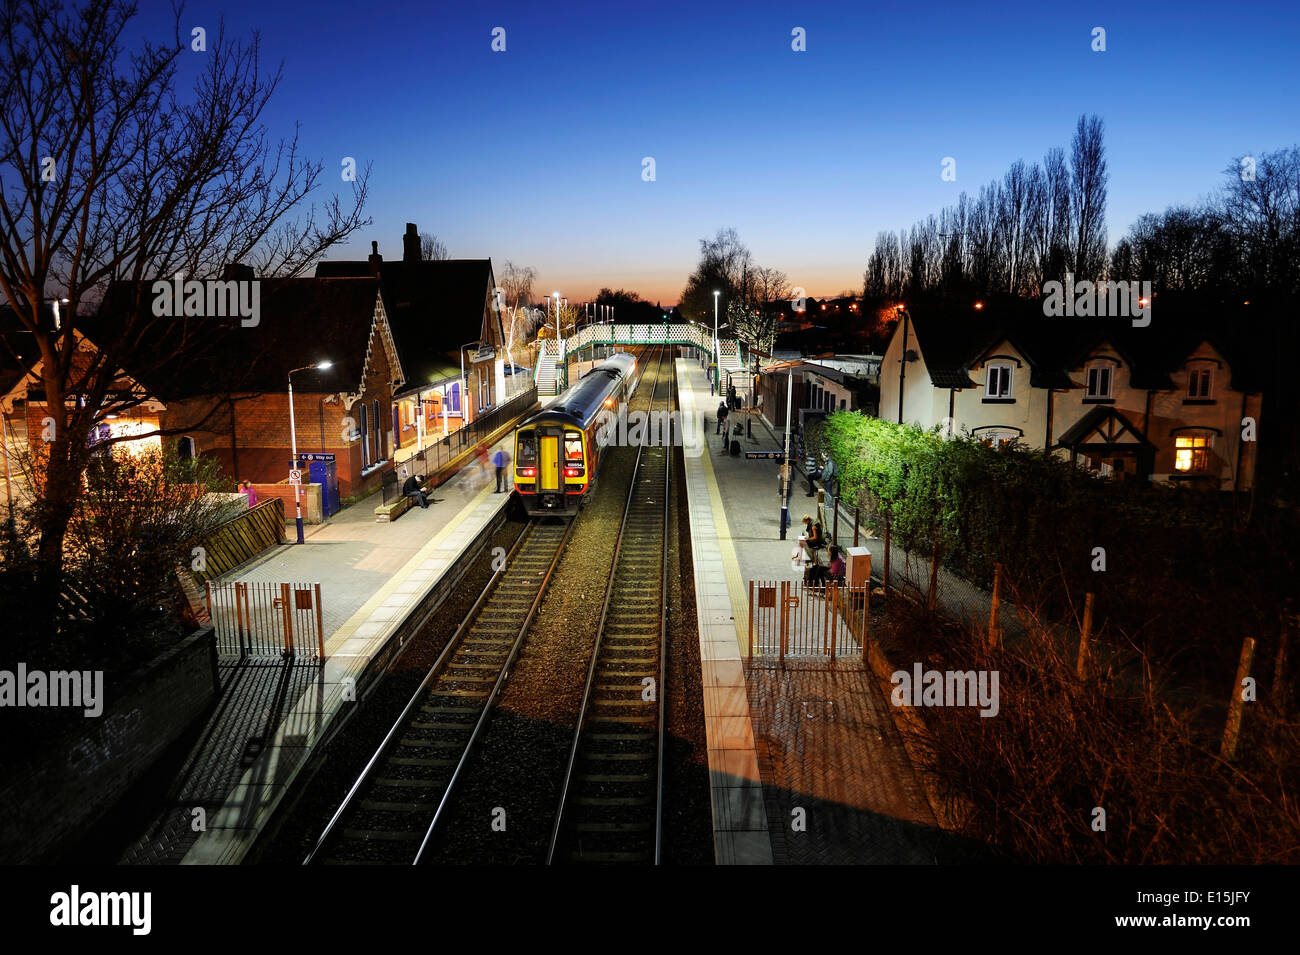 Widnes North railway station where the singer / songwriter is believed to have written the hit song 'Homeward Bound'. - Stock Image